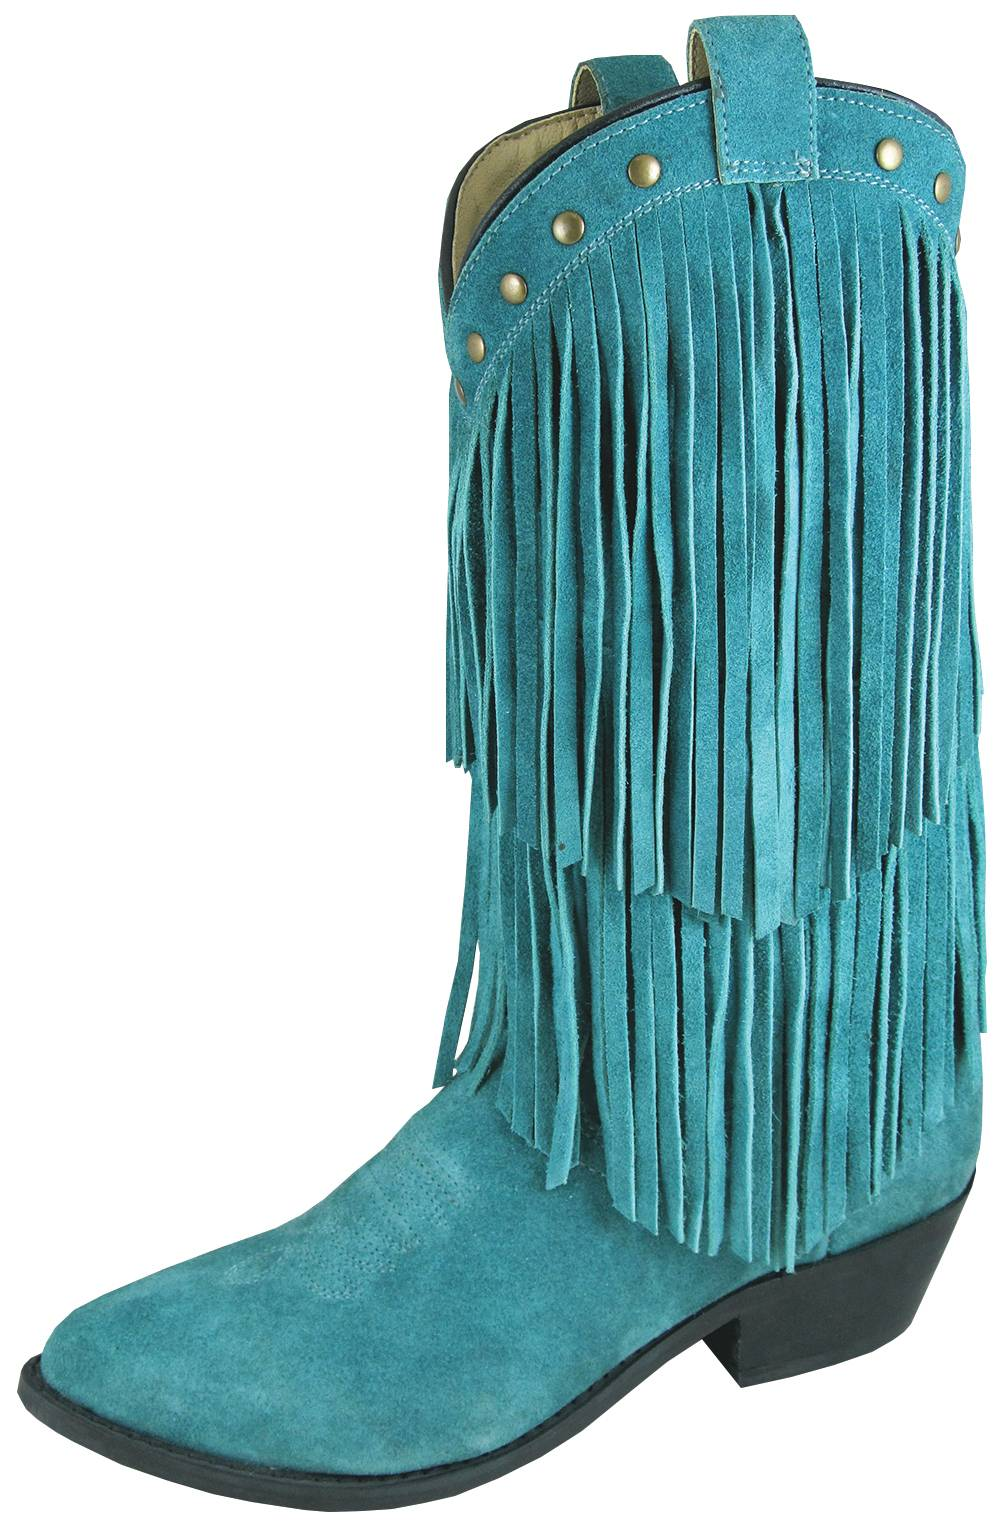 Smoky Mountain Womens Wisteria Double Fringe Leather Boots -Teal